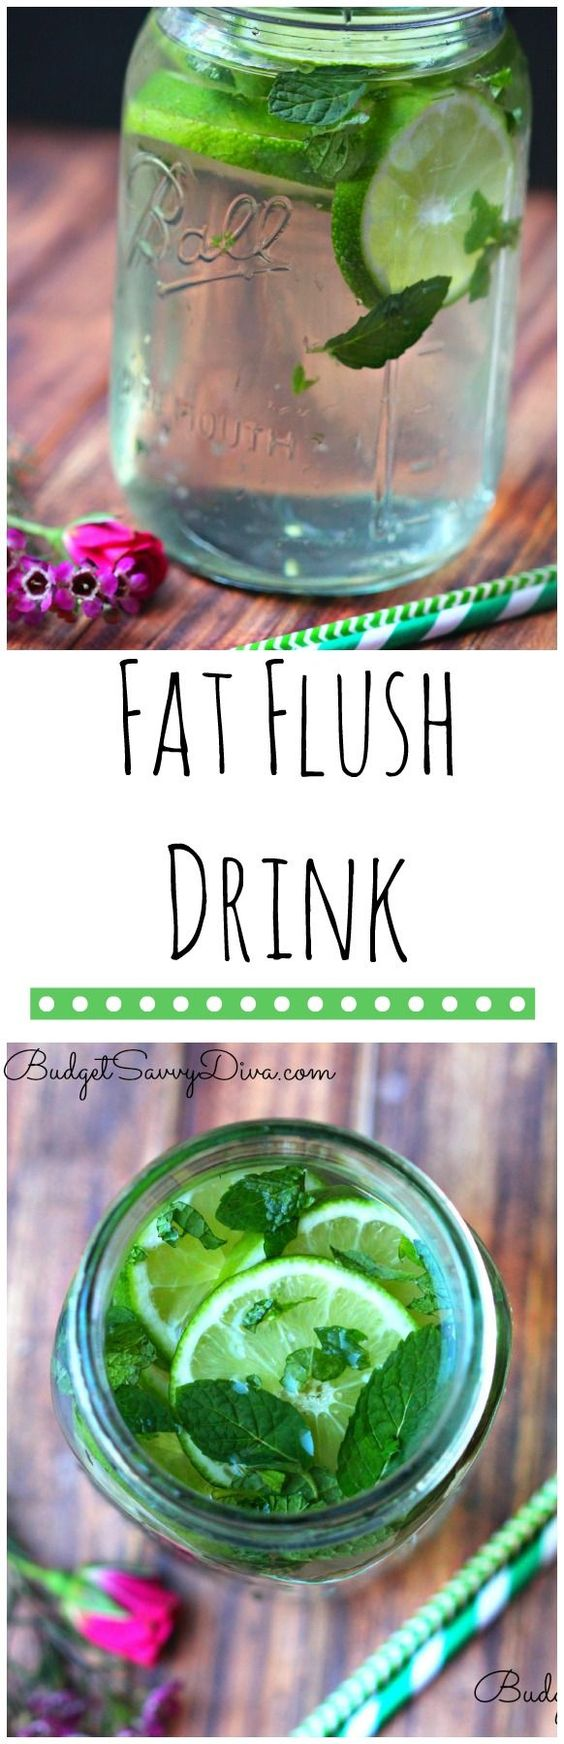 fat flush drink.... using green tea and mint leaves per http://www.budgetsavvydiva.com/2015/02/fat-flush-detox-drink-recipe/ You can add tons of ice to the drink as well – colder water makes your body heat up the water for digestion which actually burns more calories :)